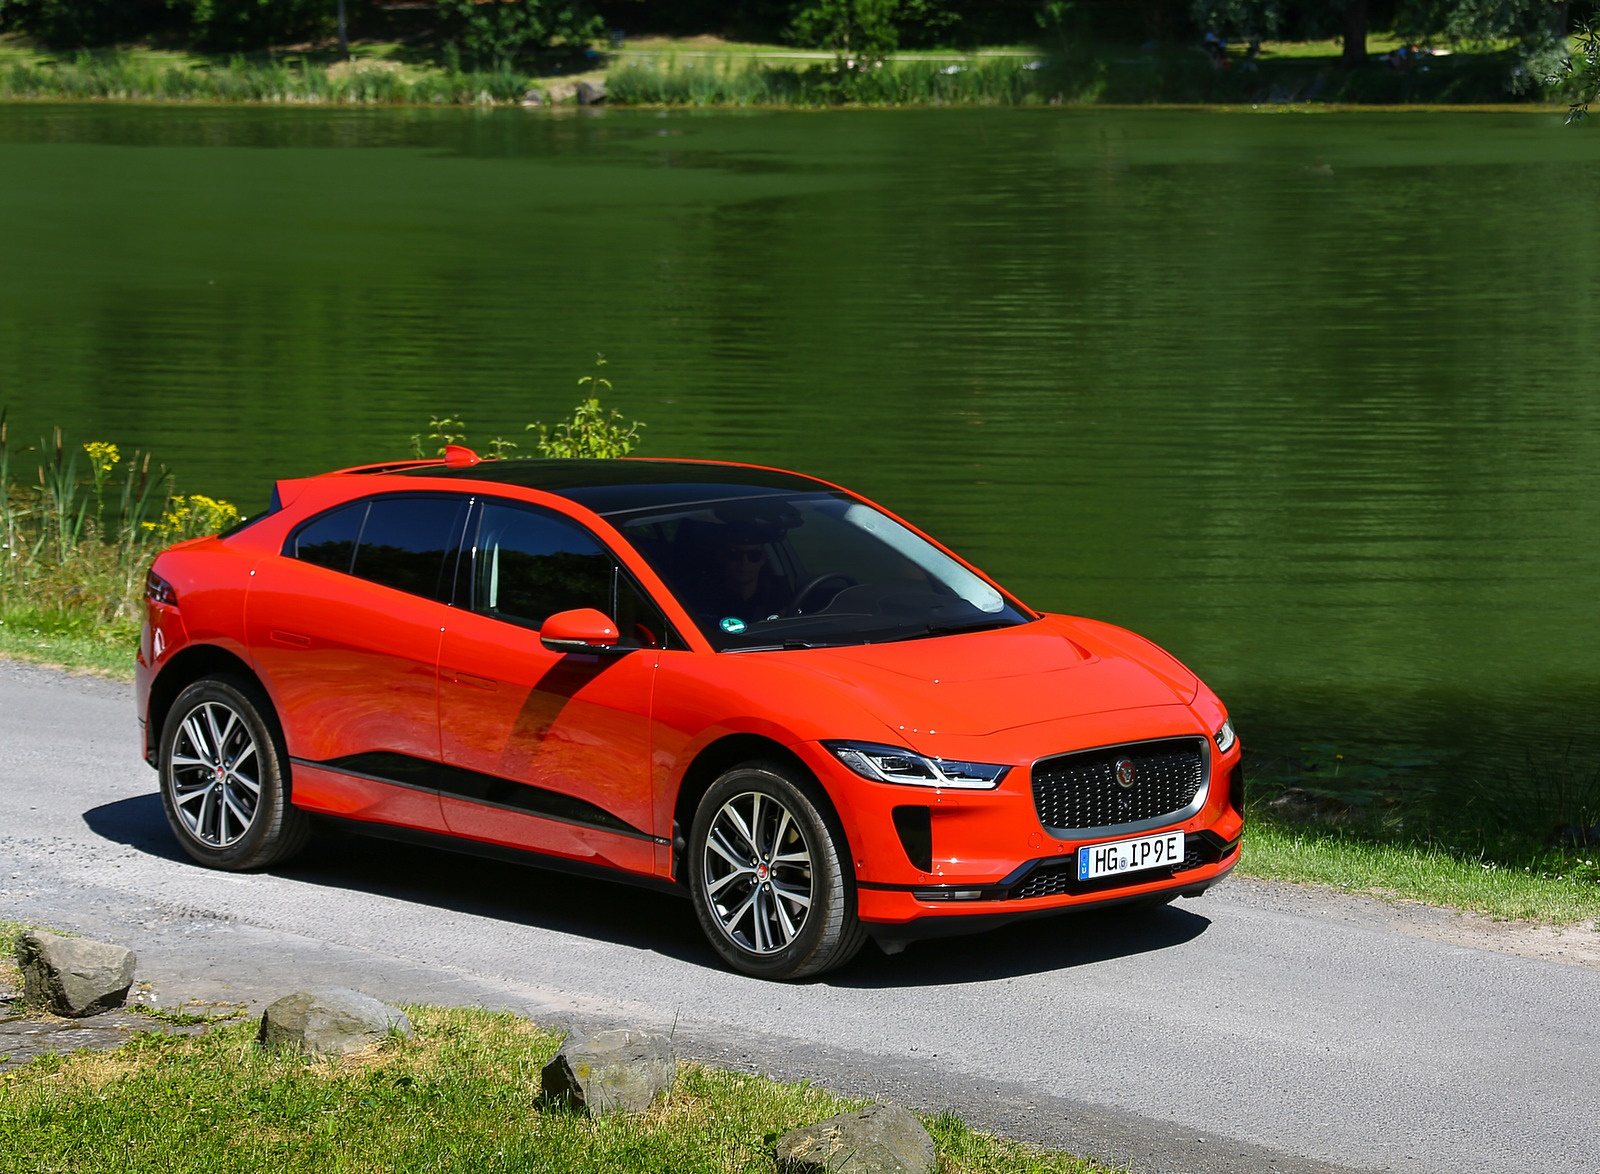 2019 Jaguar I-PACE EV400 AWD HSE First Edition (Color: Photon Red) Front Three-Quarter Wallpapers #44 of 192